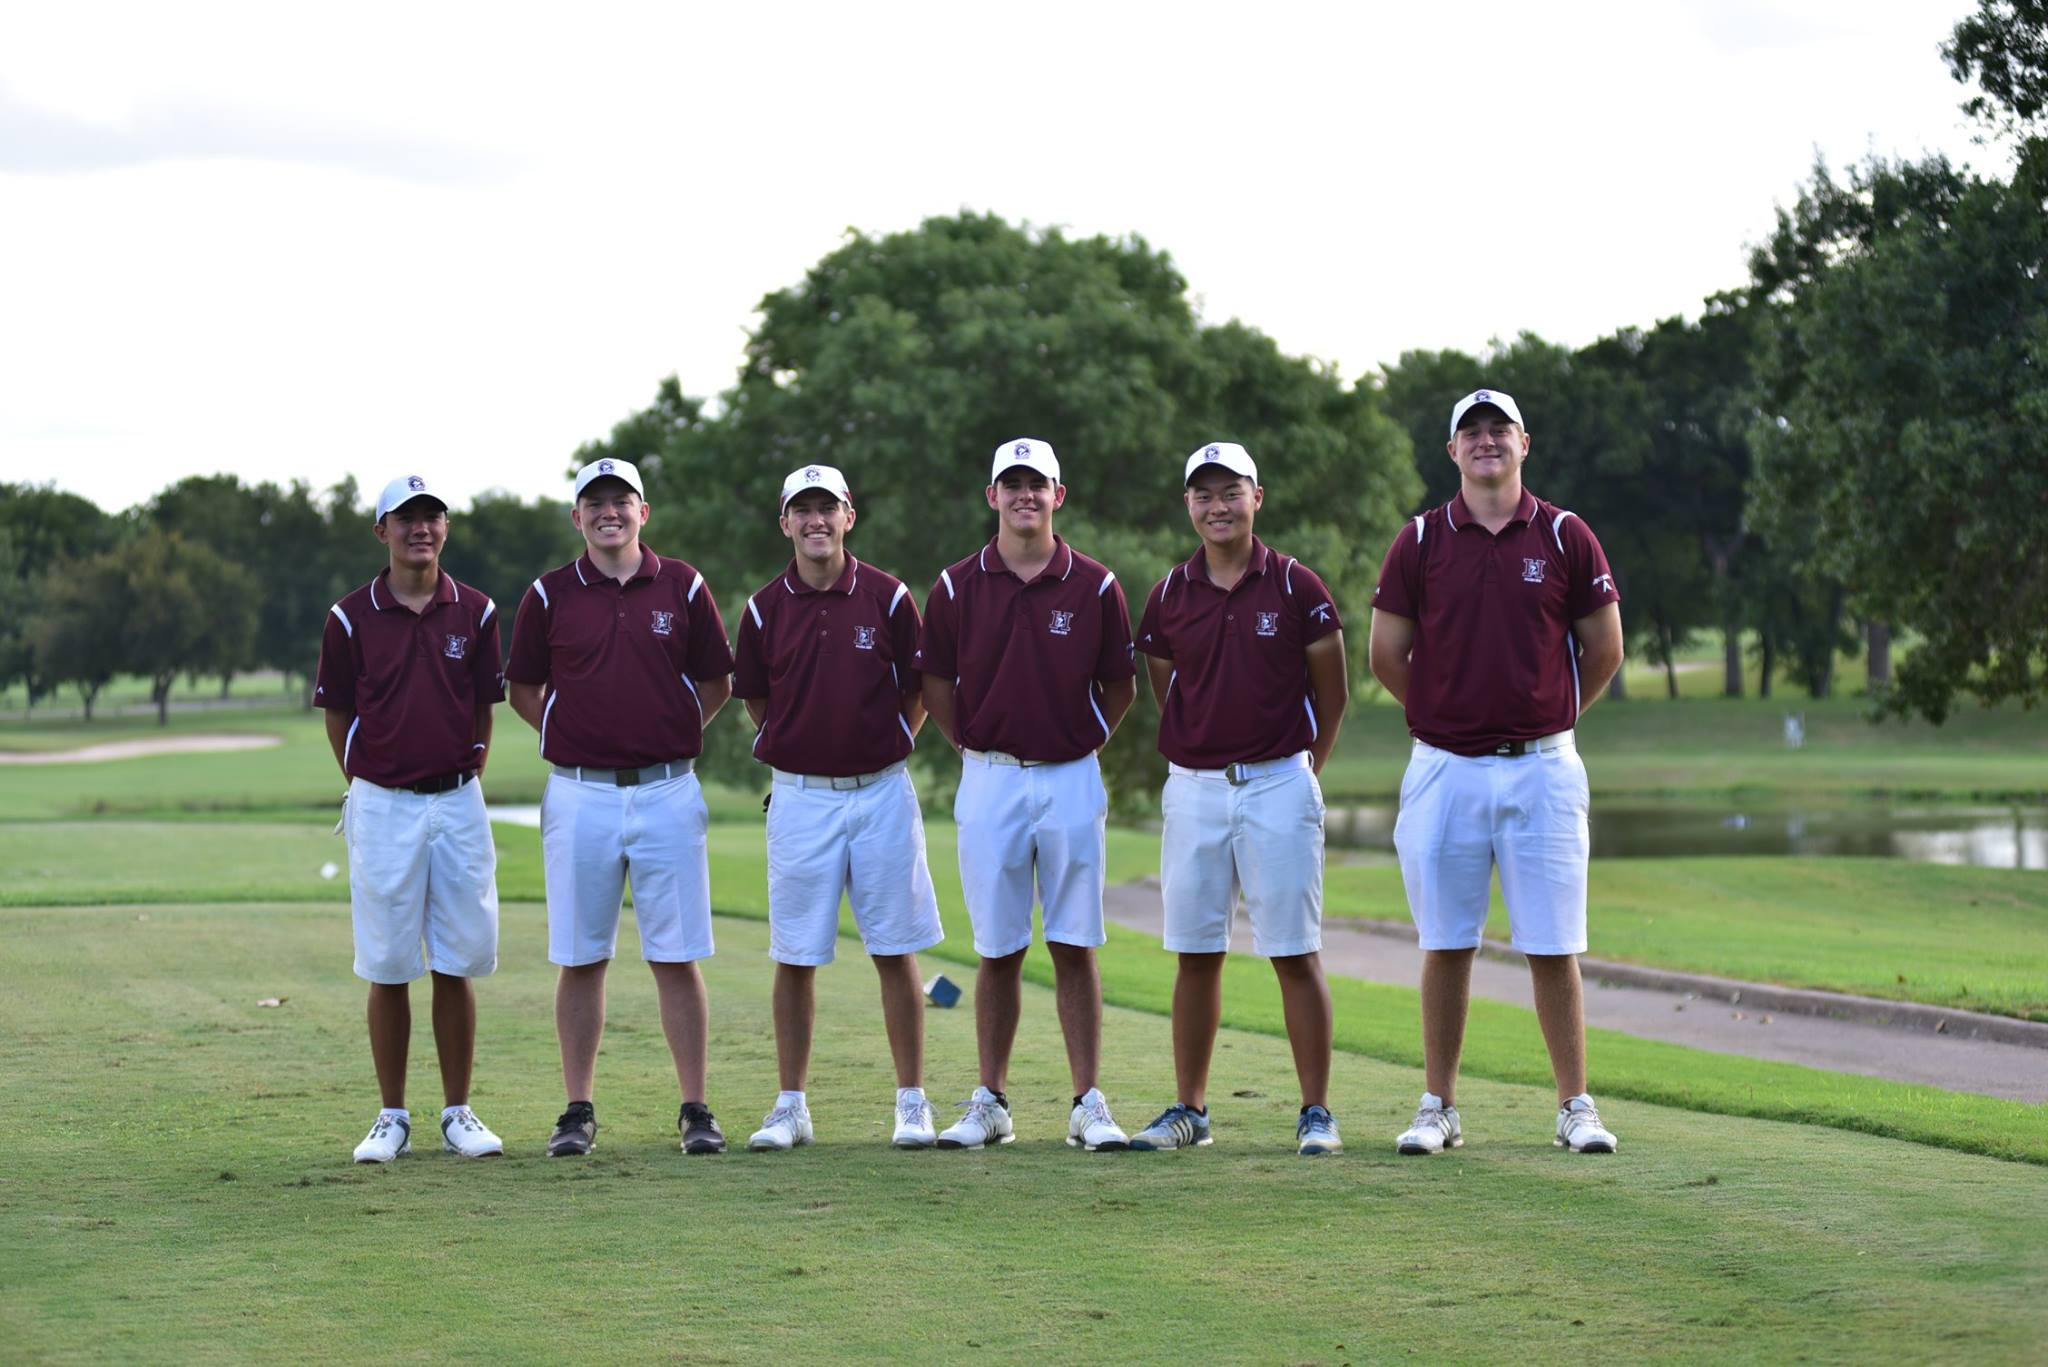 The HHS Boys Golf Team finishes in 27th place out of 52 teams in the rain shortened Bart Granger Memorial held at Pecan Valley Golf Club in Ft Worth Texas yesterday.  The team was looking to moving up the leaderboard on Saturday but heavy rain forced the cancellation of round three.  After two rounds sophomore Johnny Walker (78-70) and senior Alexander Yu (75-74) led the way for the Huskies. A trio of senior Brandon Hill (77-79), Caden Rice (82-79) and Kanoah Cunningham (85-83) rounded out the lineup.